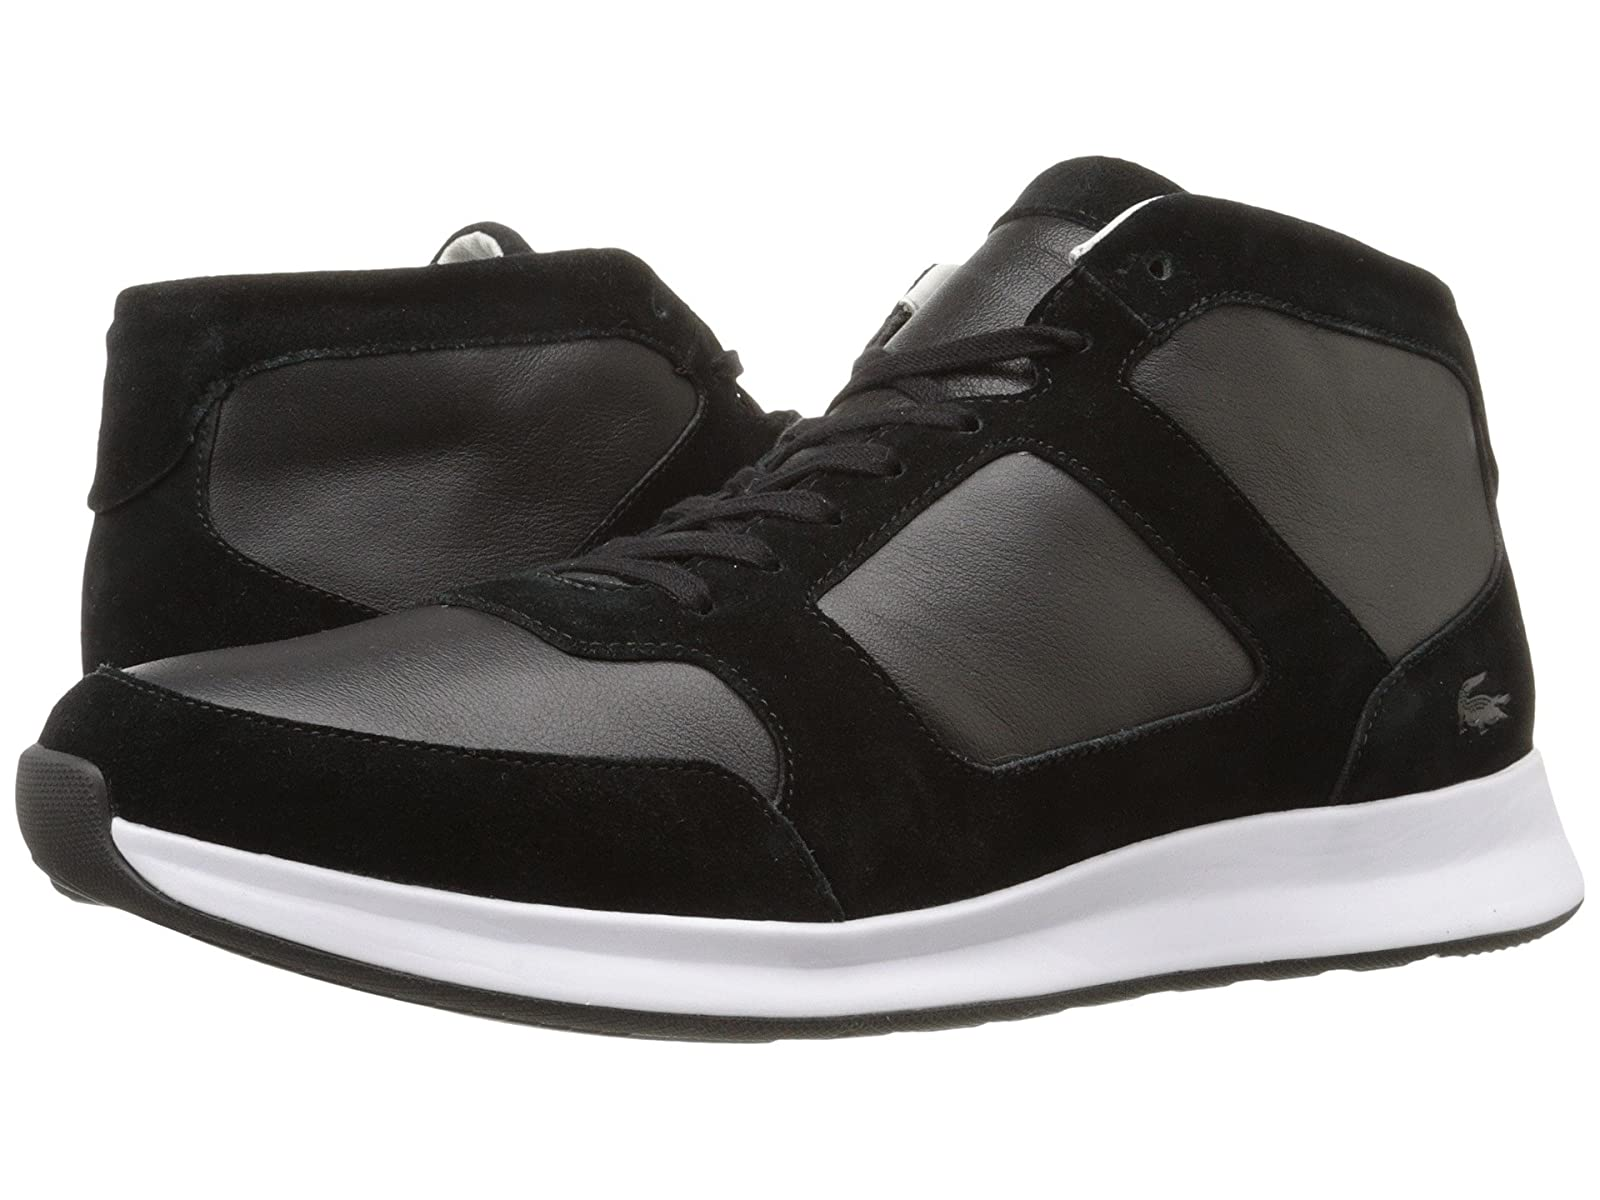 Lacoste Joggeur Mid 316 1Cheap and distinctive eye-catching shoes